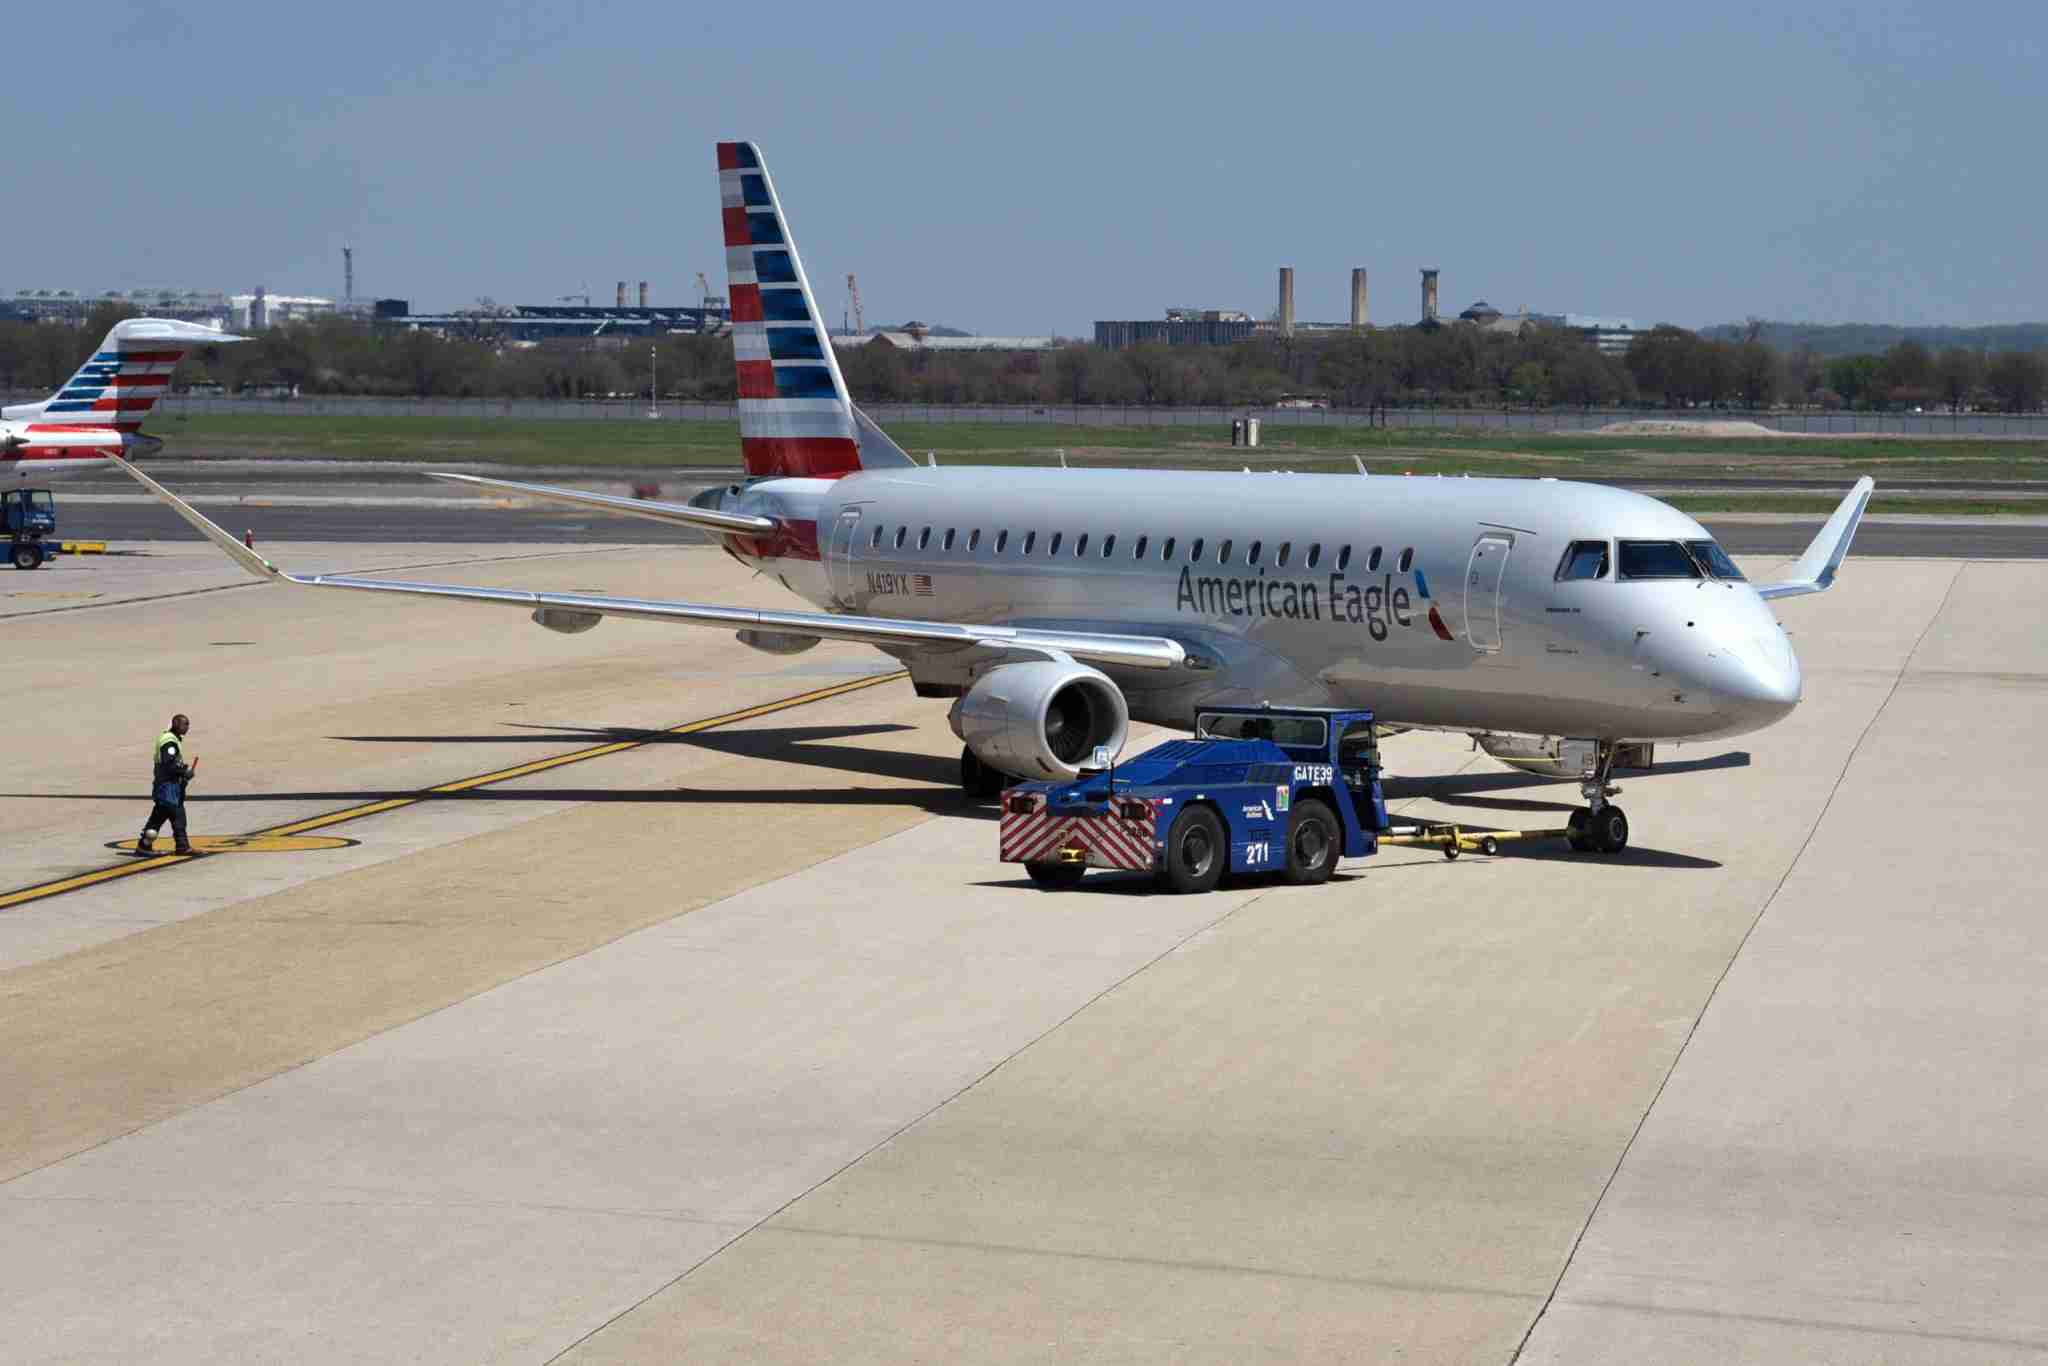 An American Airlines Embraer ERJ175 aircraft is pushed from its gate at Ronald Reagan Washington National Airport. (Photo by Robert Alexander/Getty Images)